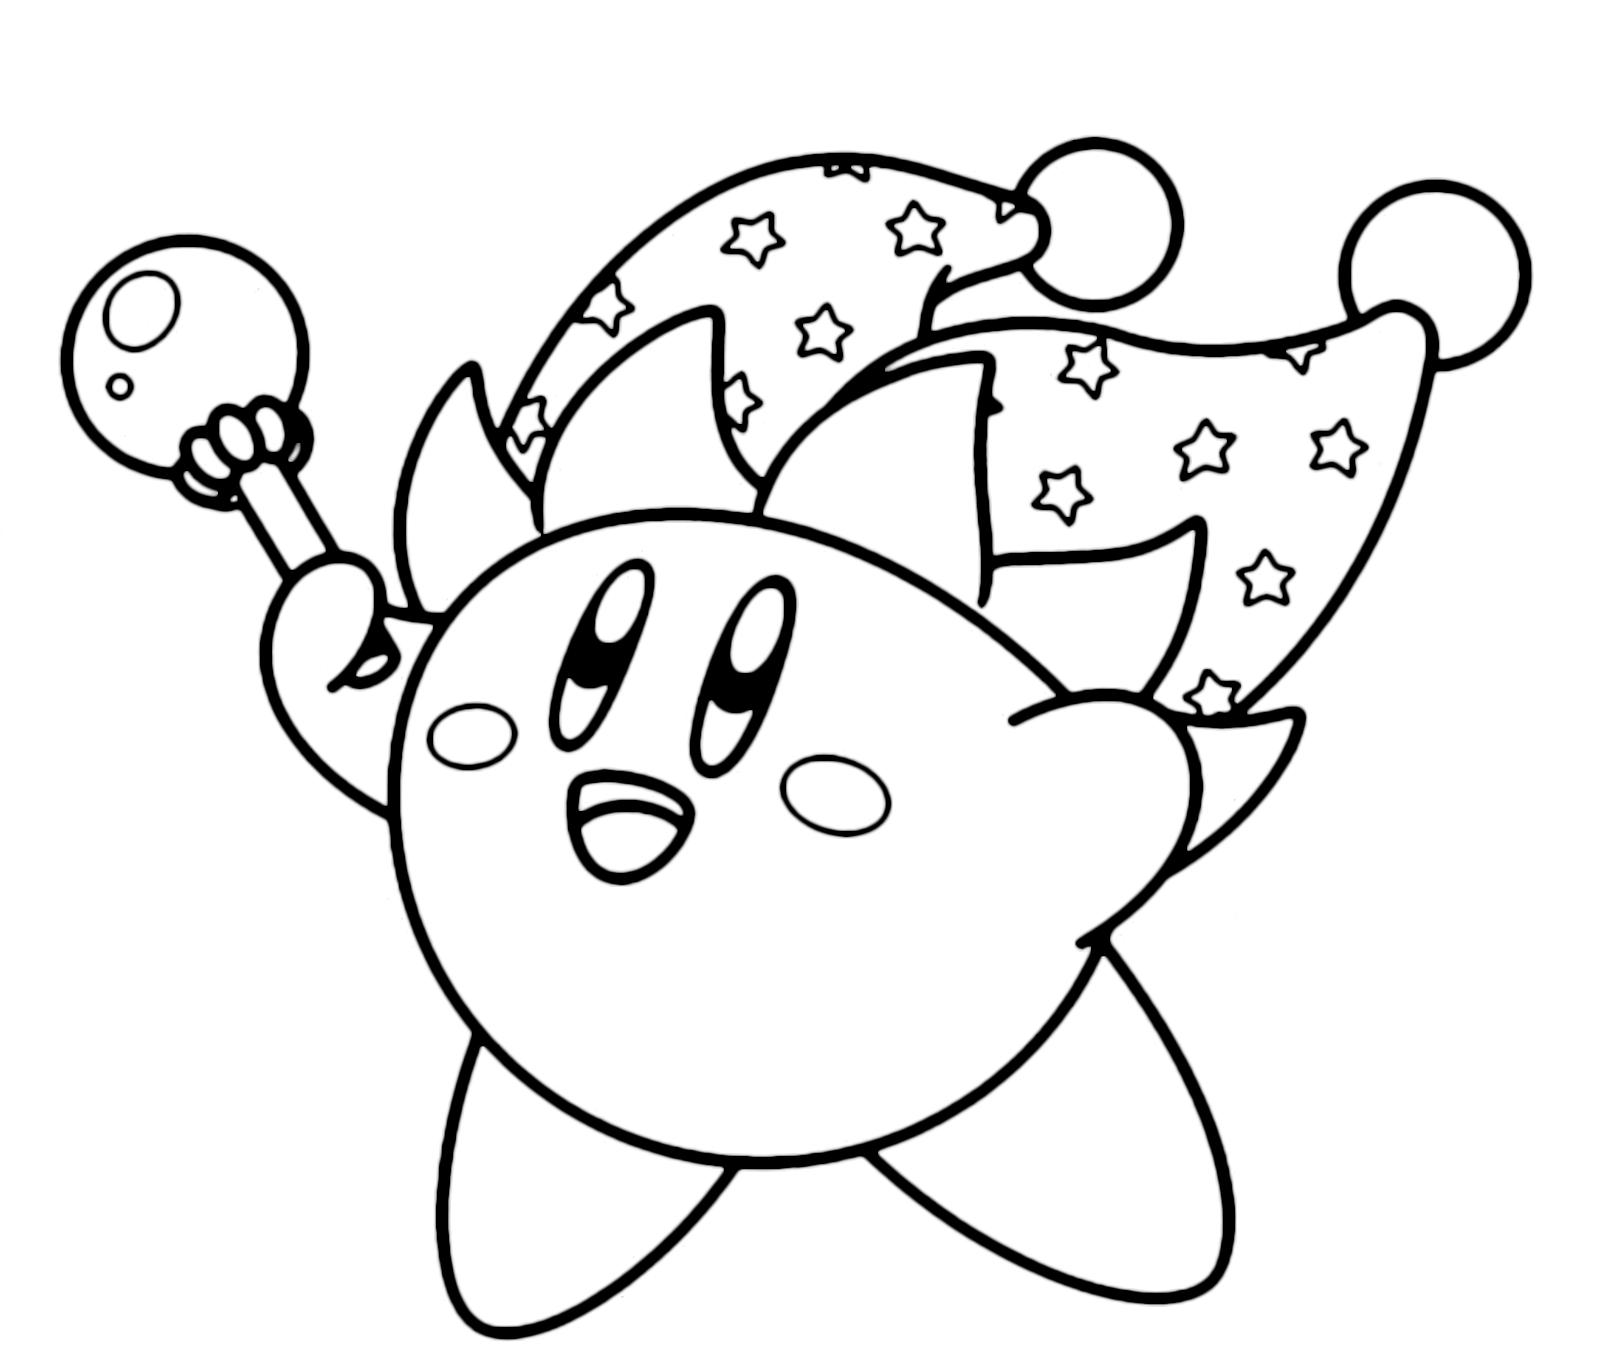 Bomb Kirby Coloring Pages Coloring Pages